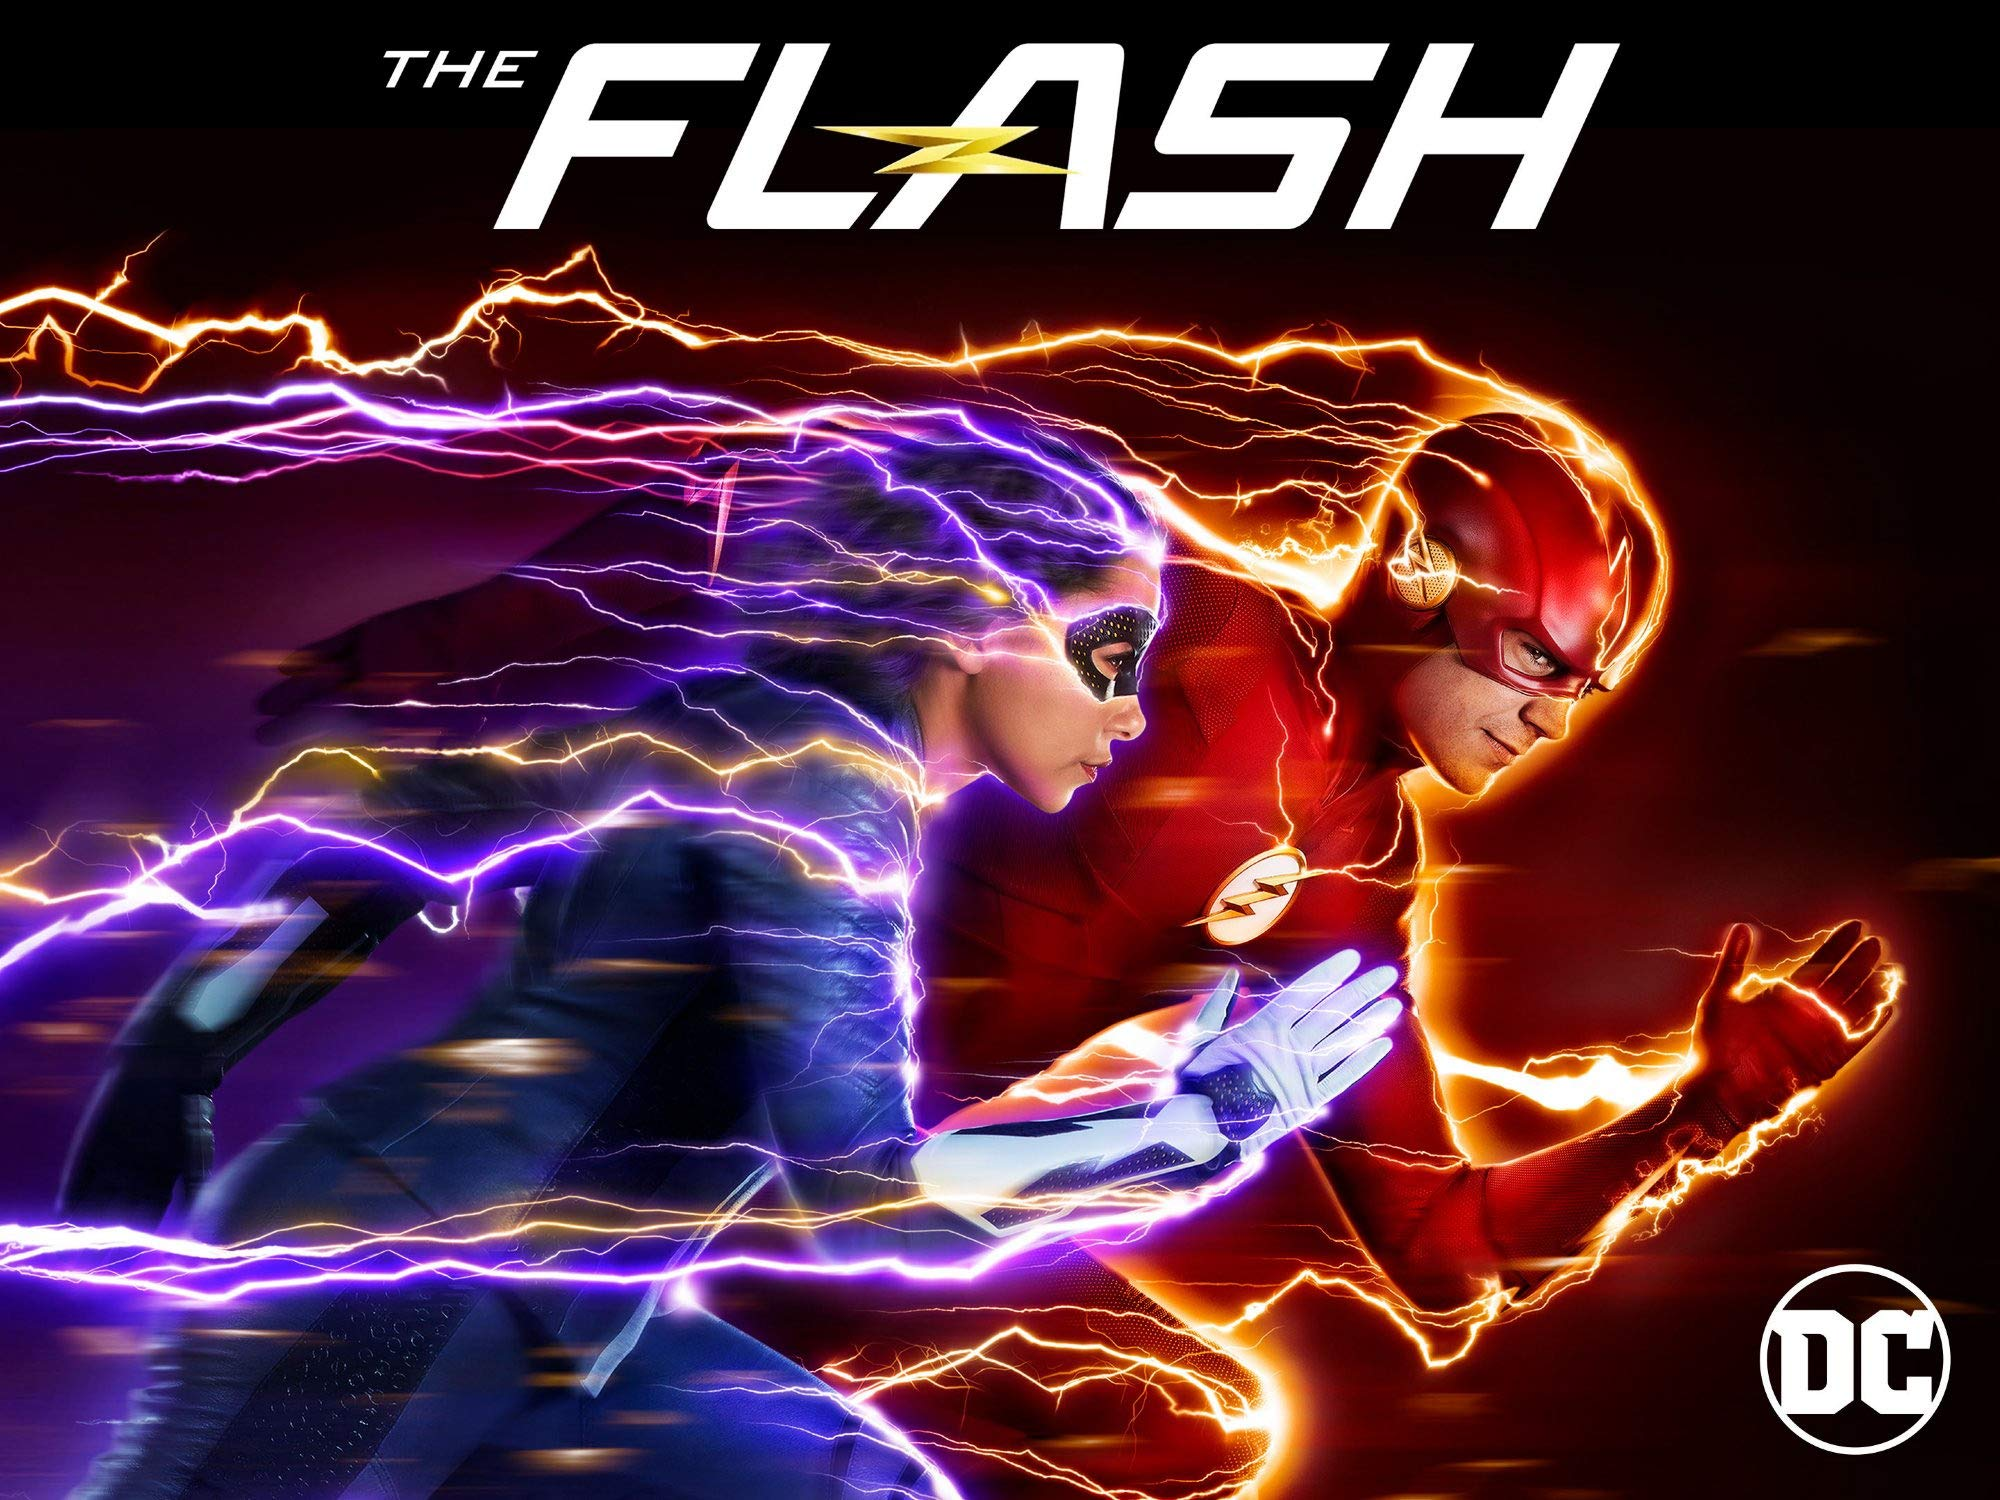 Ver flash temporada 4 capitulo 14